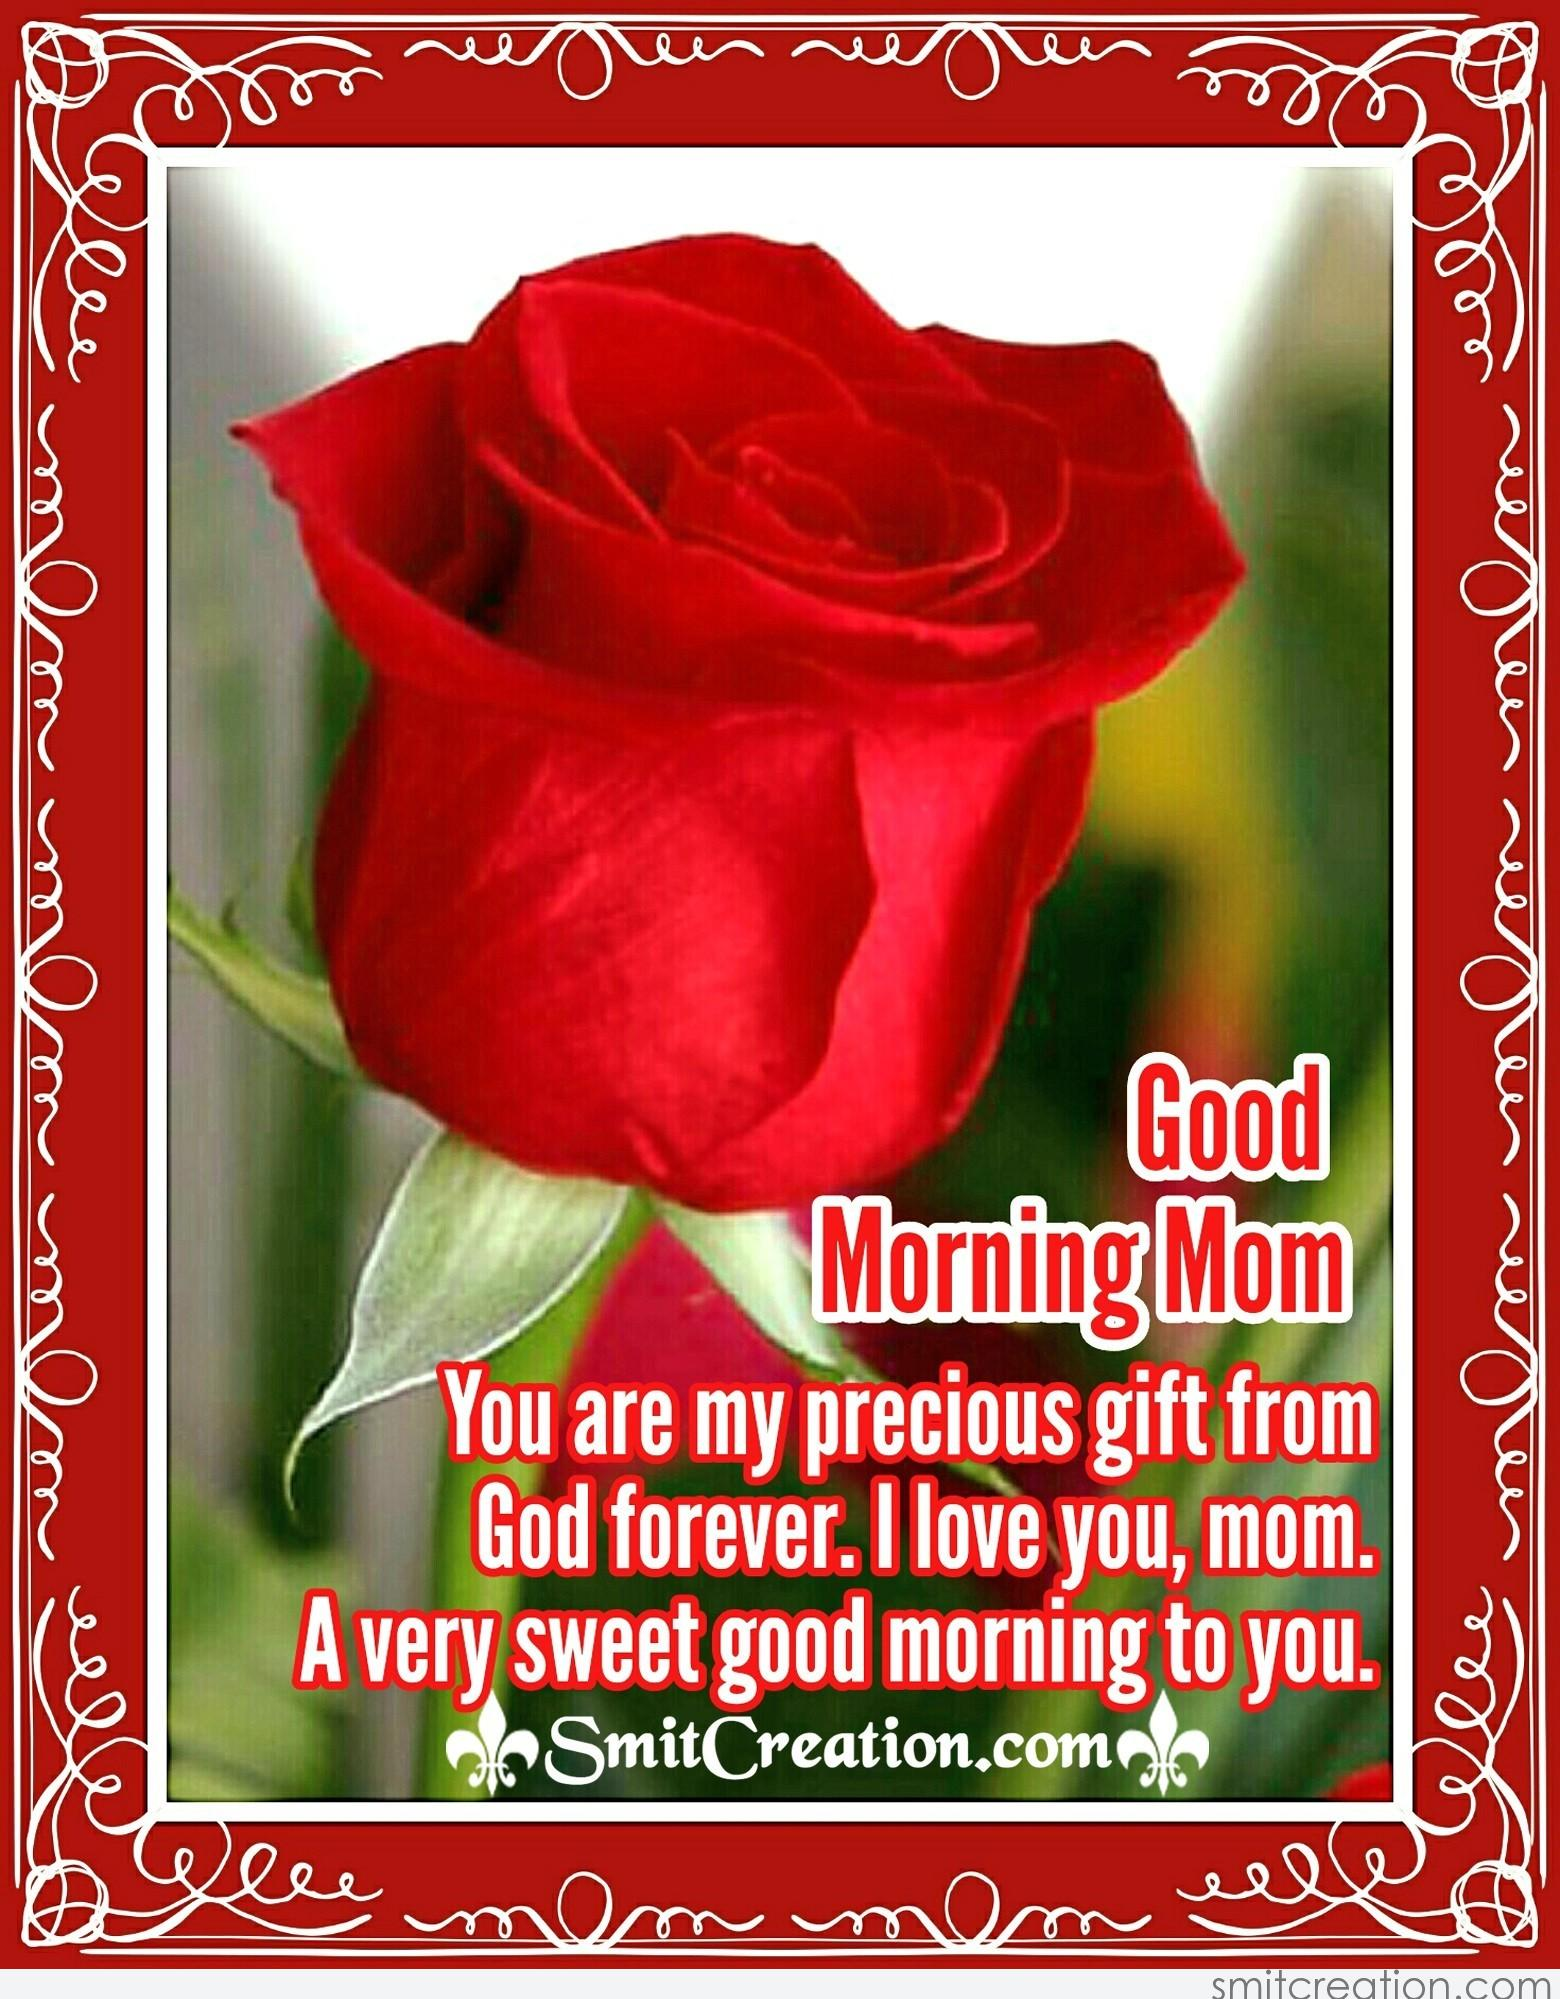 Good morning mom you are my precious gift from god smitcreation good morning mom you are my precious gift from god forever i love you mom a very sweet good morning to you negle Choice Image